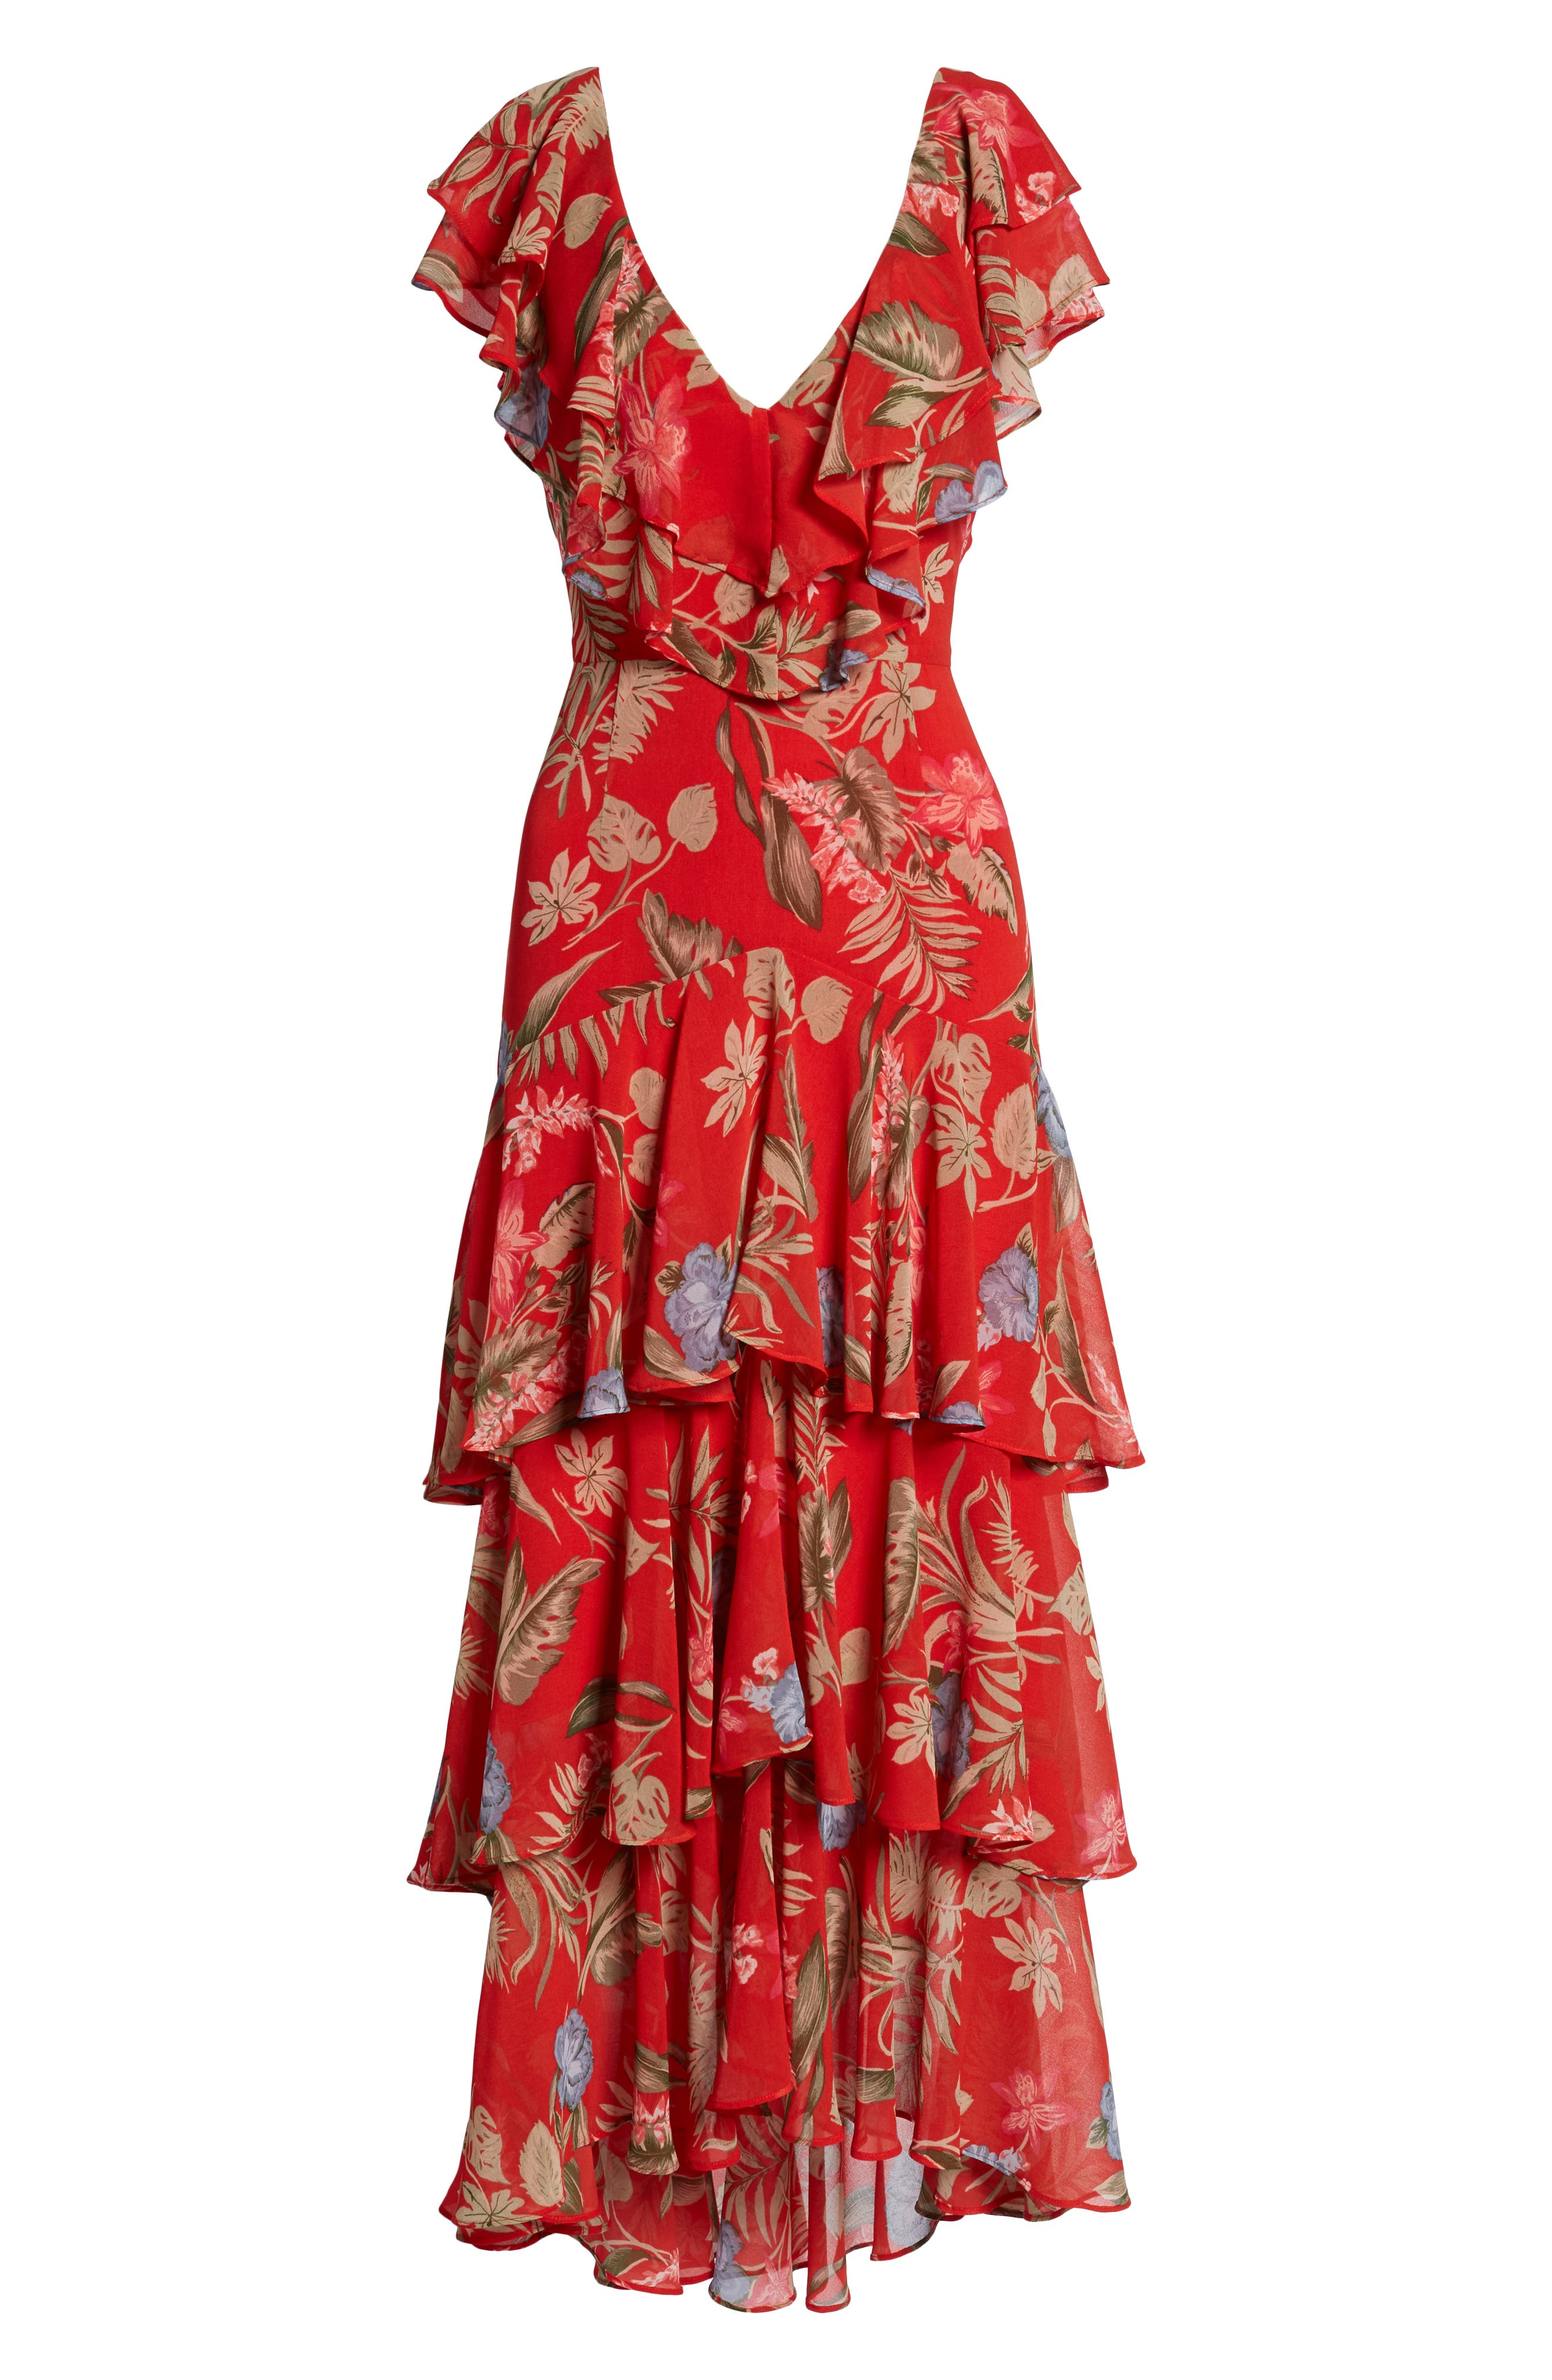 Chelsea Tiered Ruffle Maxi Dress,                             Alternate thumbnail 7, color,                             Red Tropical